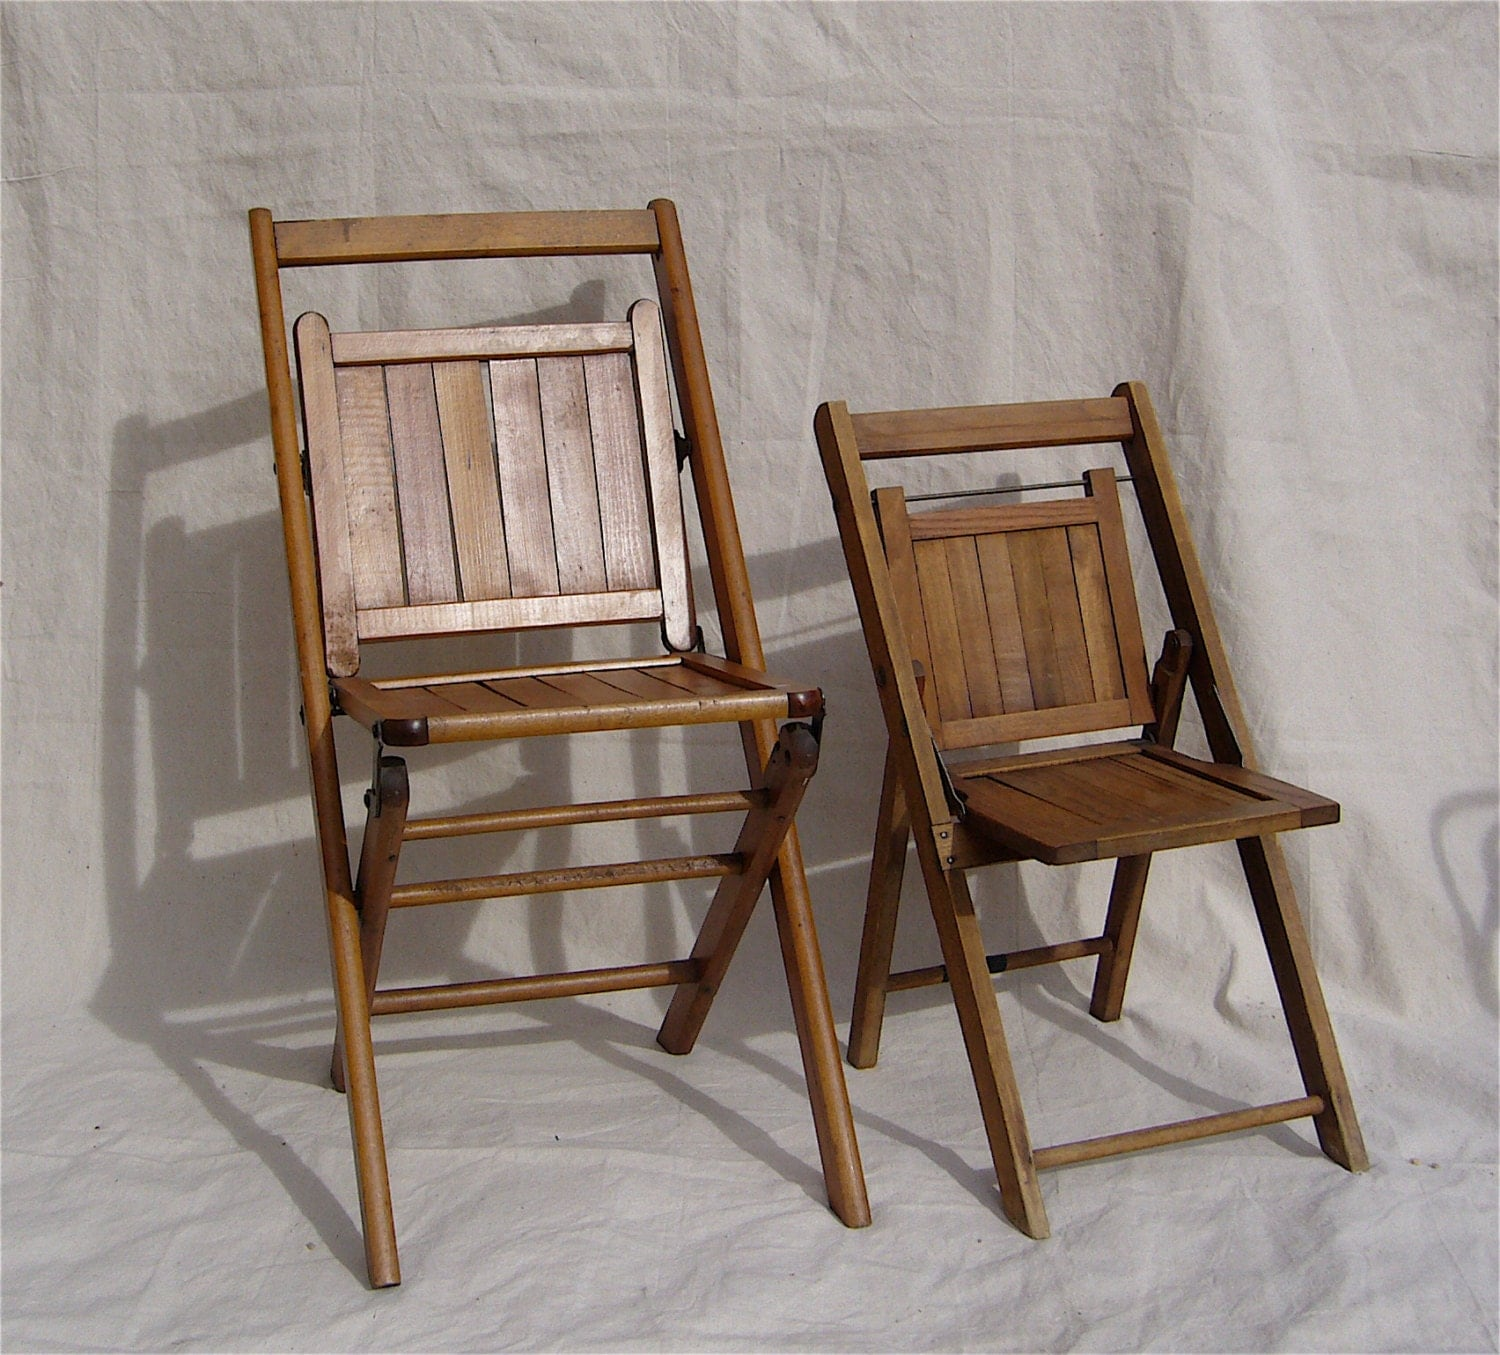 Antique Wooden Folding Chair